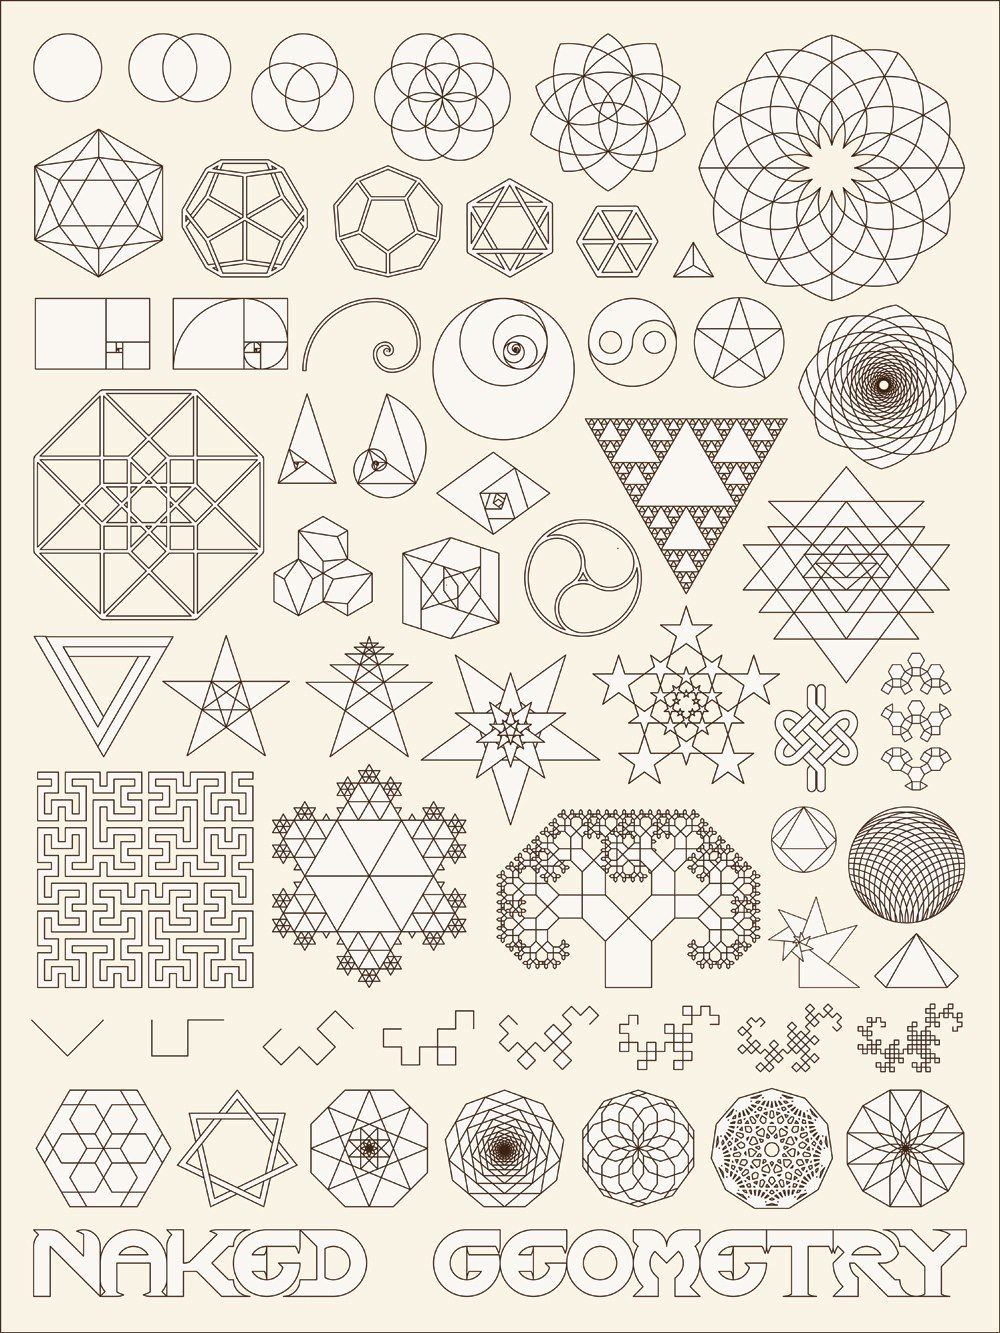 Great patterns and logos for branding spiritual approach openourminds naked geometry james gyre i see that the dragon curve is included in this visualizingmaths logo and old url buycottarizona